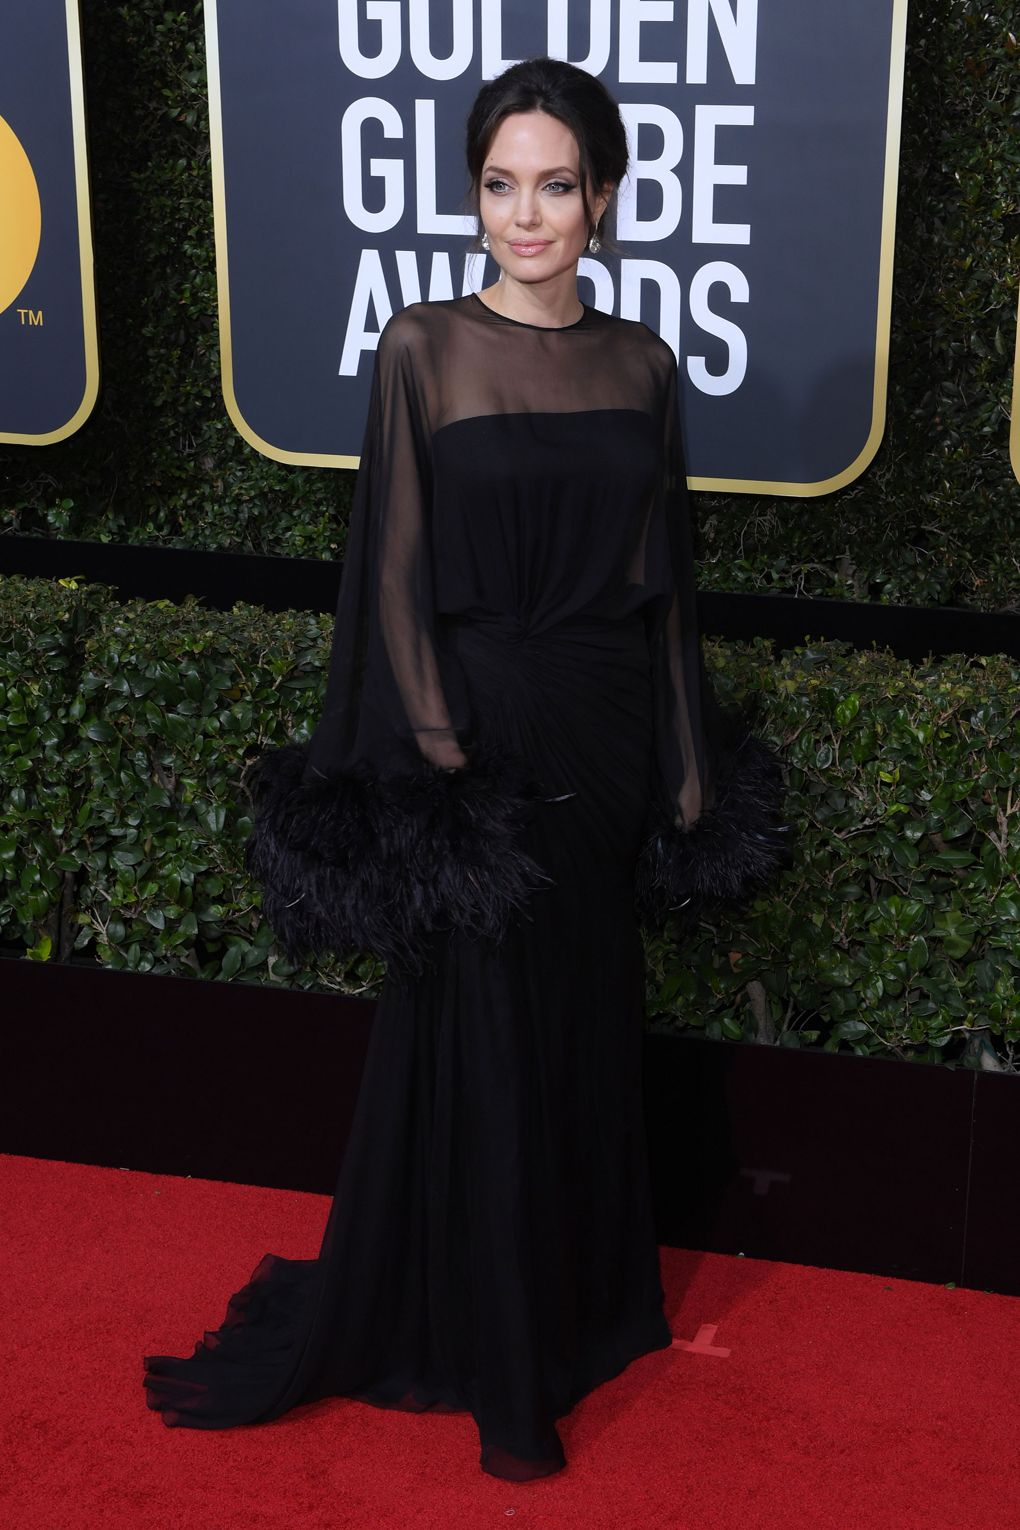 Angelina Jolie in Atelier Versace - Photo credit Rx/Shutterstock - women empowerment - black dresses golden globes 2018 - times up